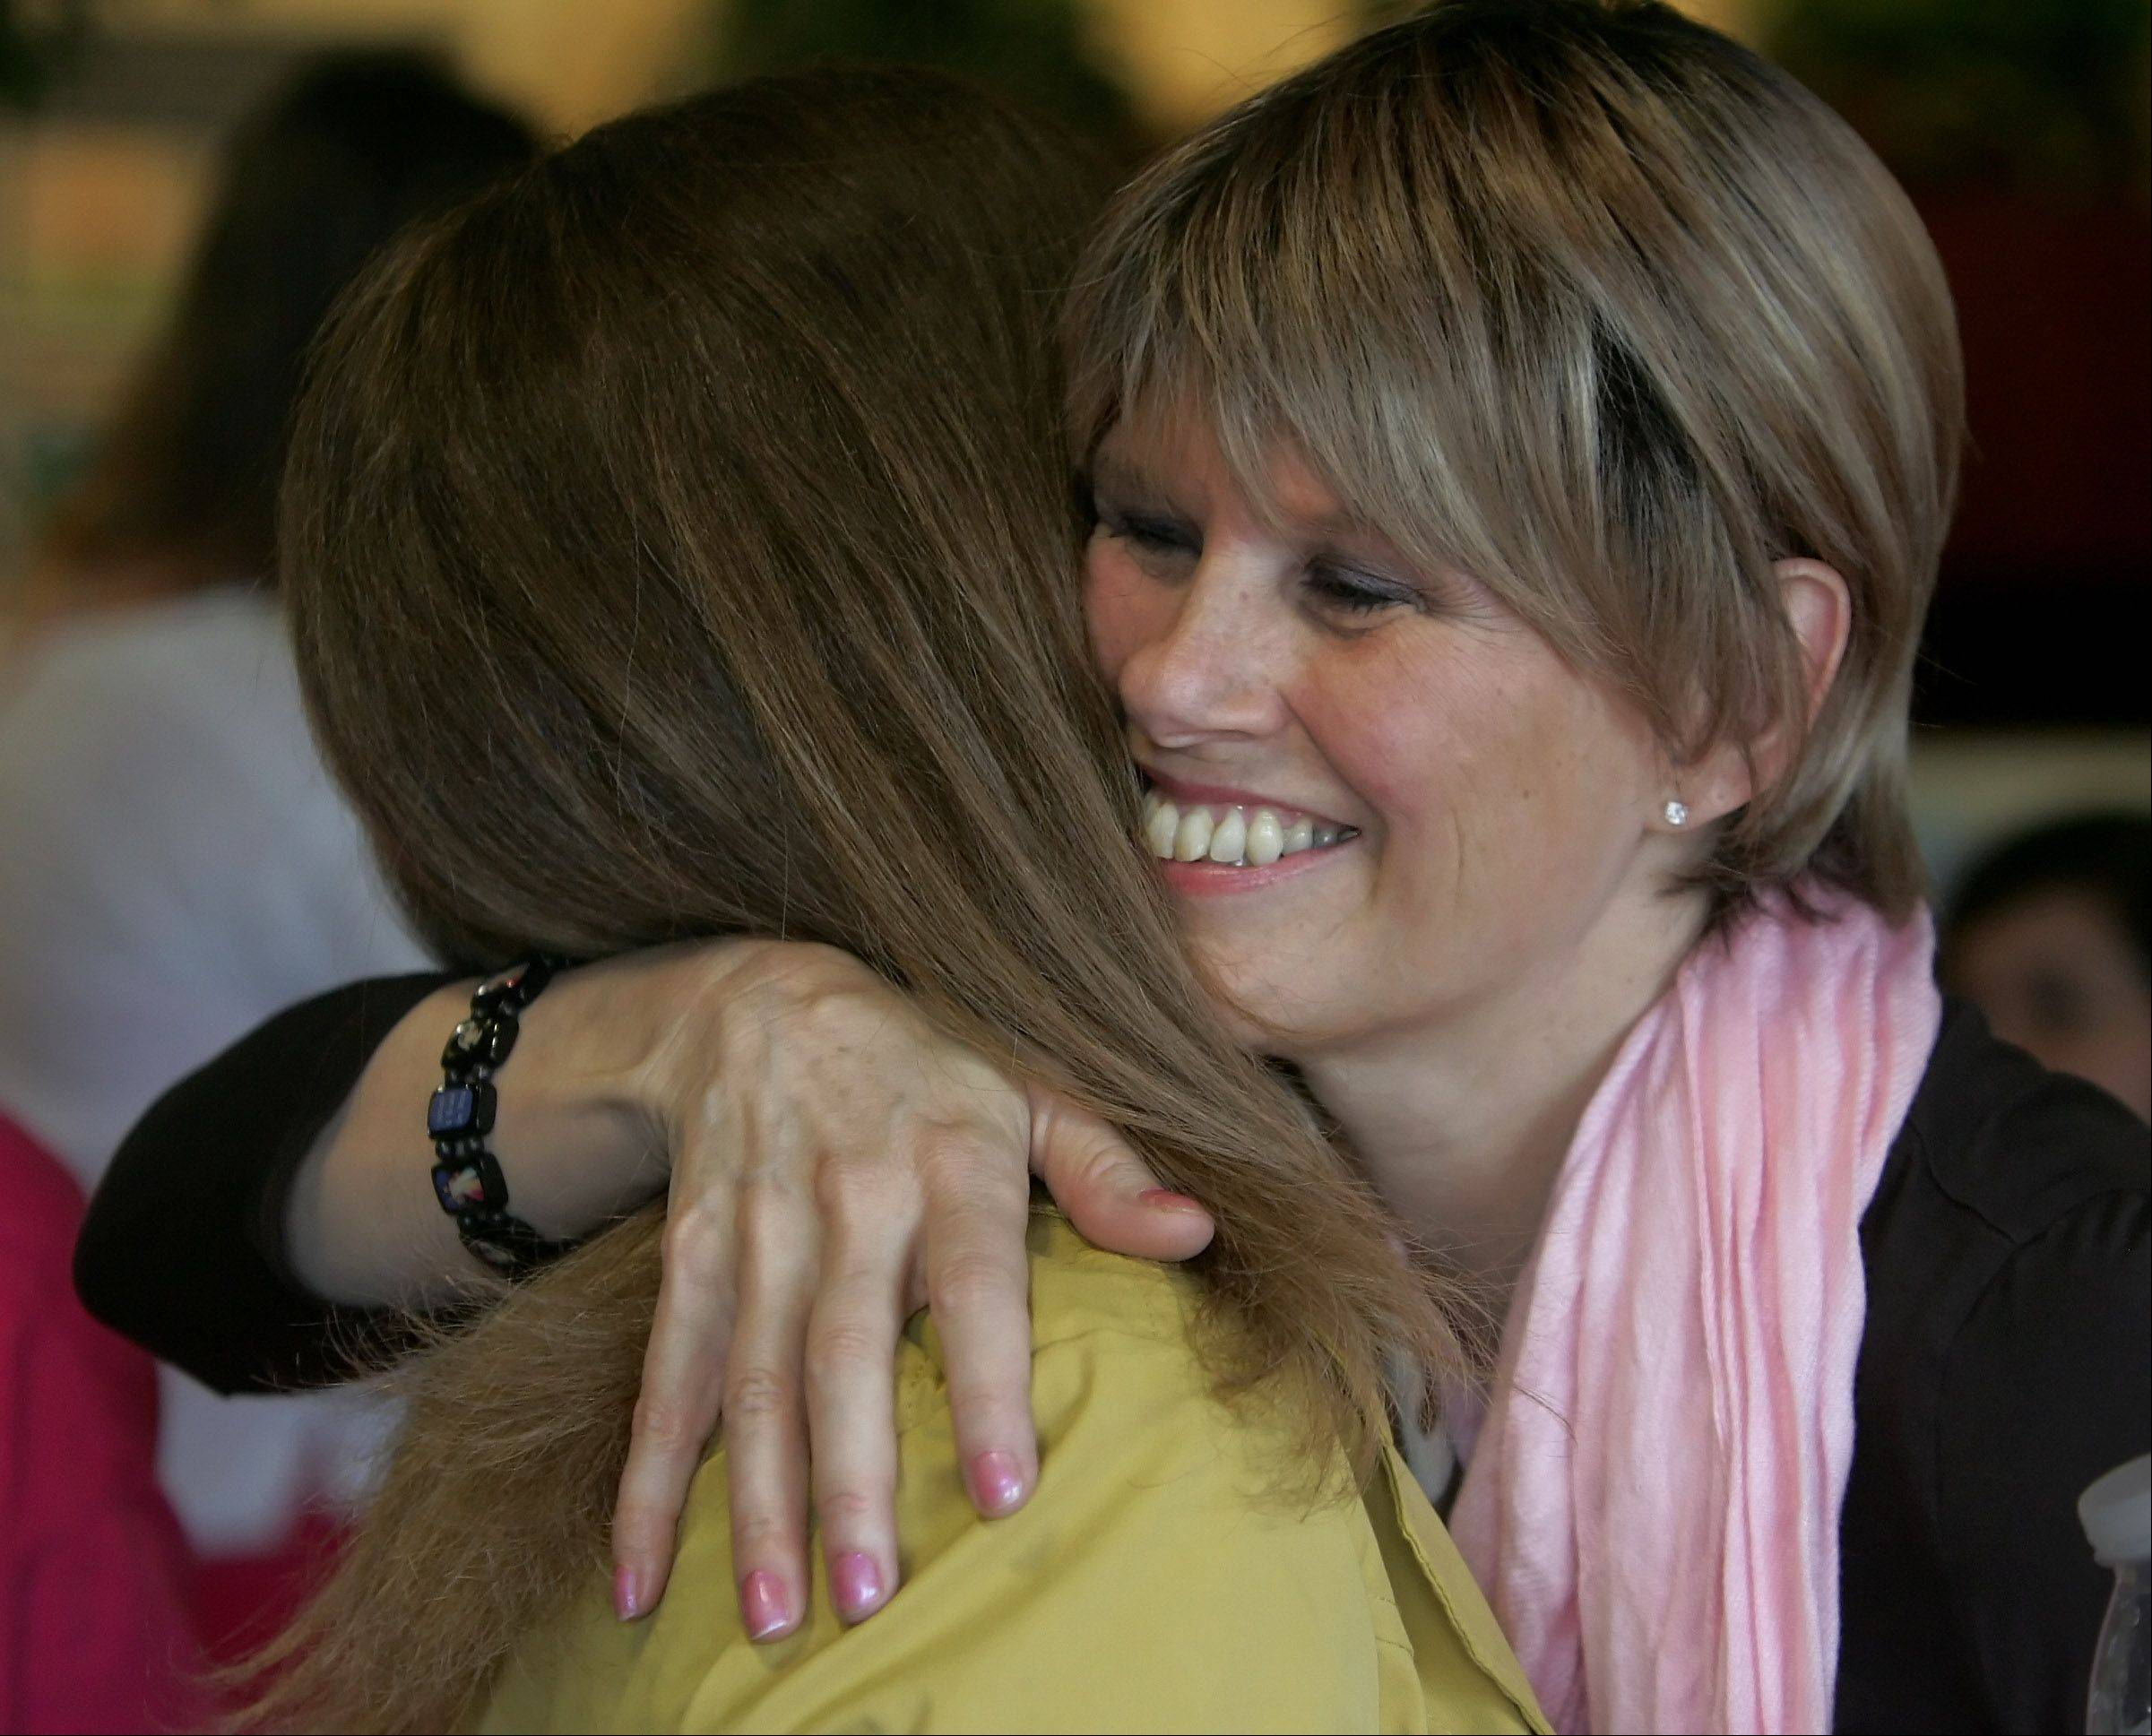 Gilbert R. Boucher II / gboucher@dailyheraldLinda Frahm receives a hug from her friend Michele Logar during Haircuts For Hope Sunday at Halo Hair & Nails in Mount Prospect to benefit Frahm, who is battling cancer. Frahm is a teacher at Lions Park School in Mount Prospect.